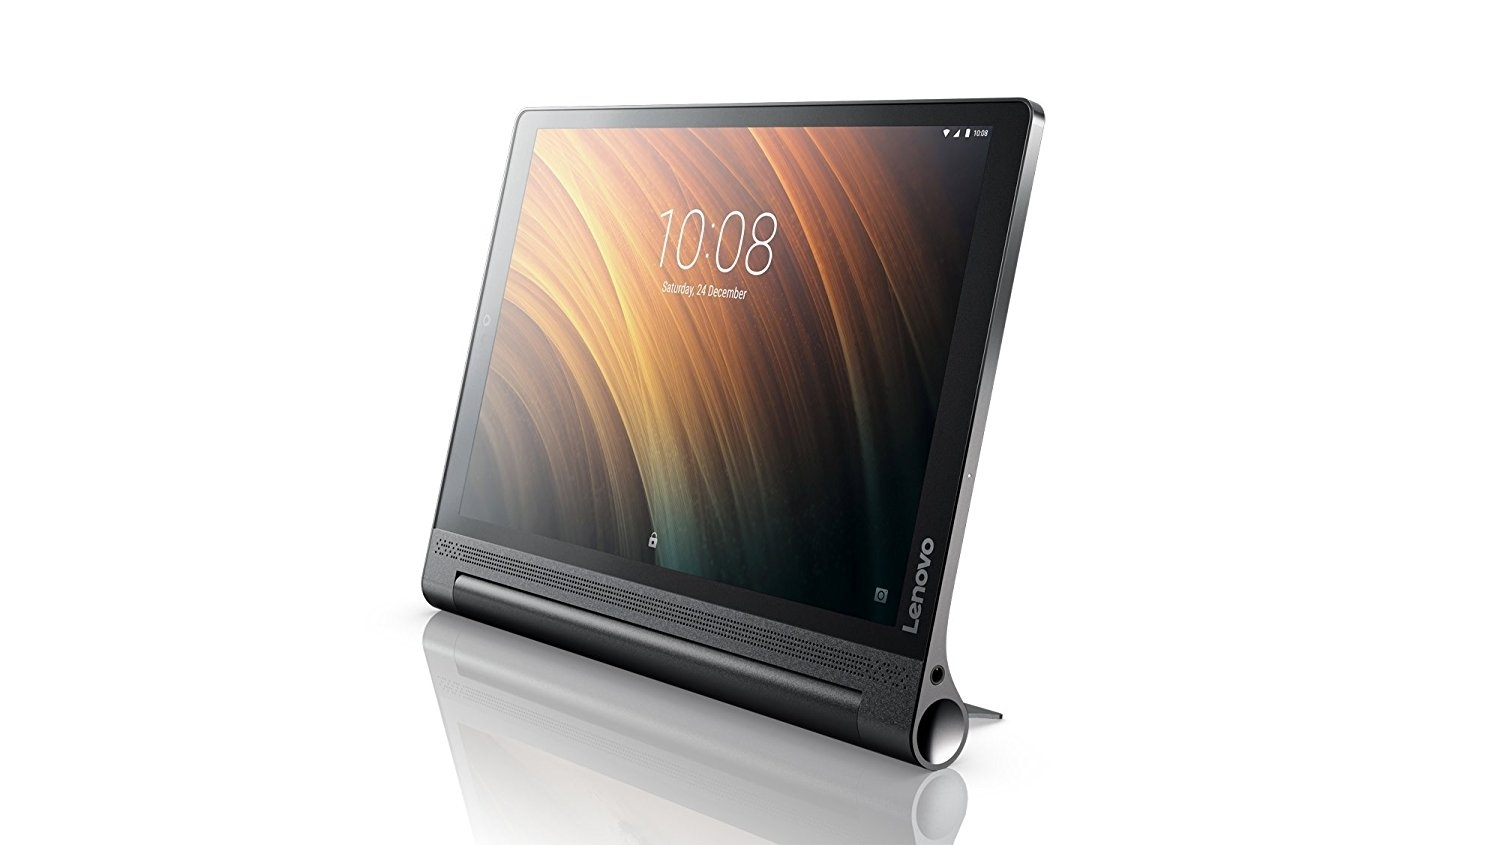 lenovo yoga tab 3 plus schwarz 32gb lte android tablet pc. Black Bedroom Furniture Sets. Home Design Ideas